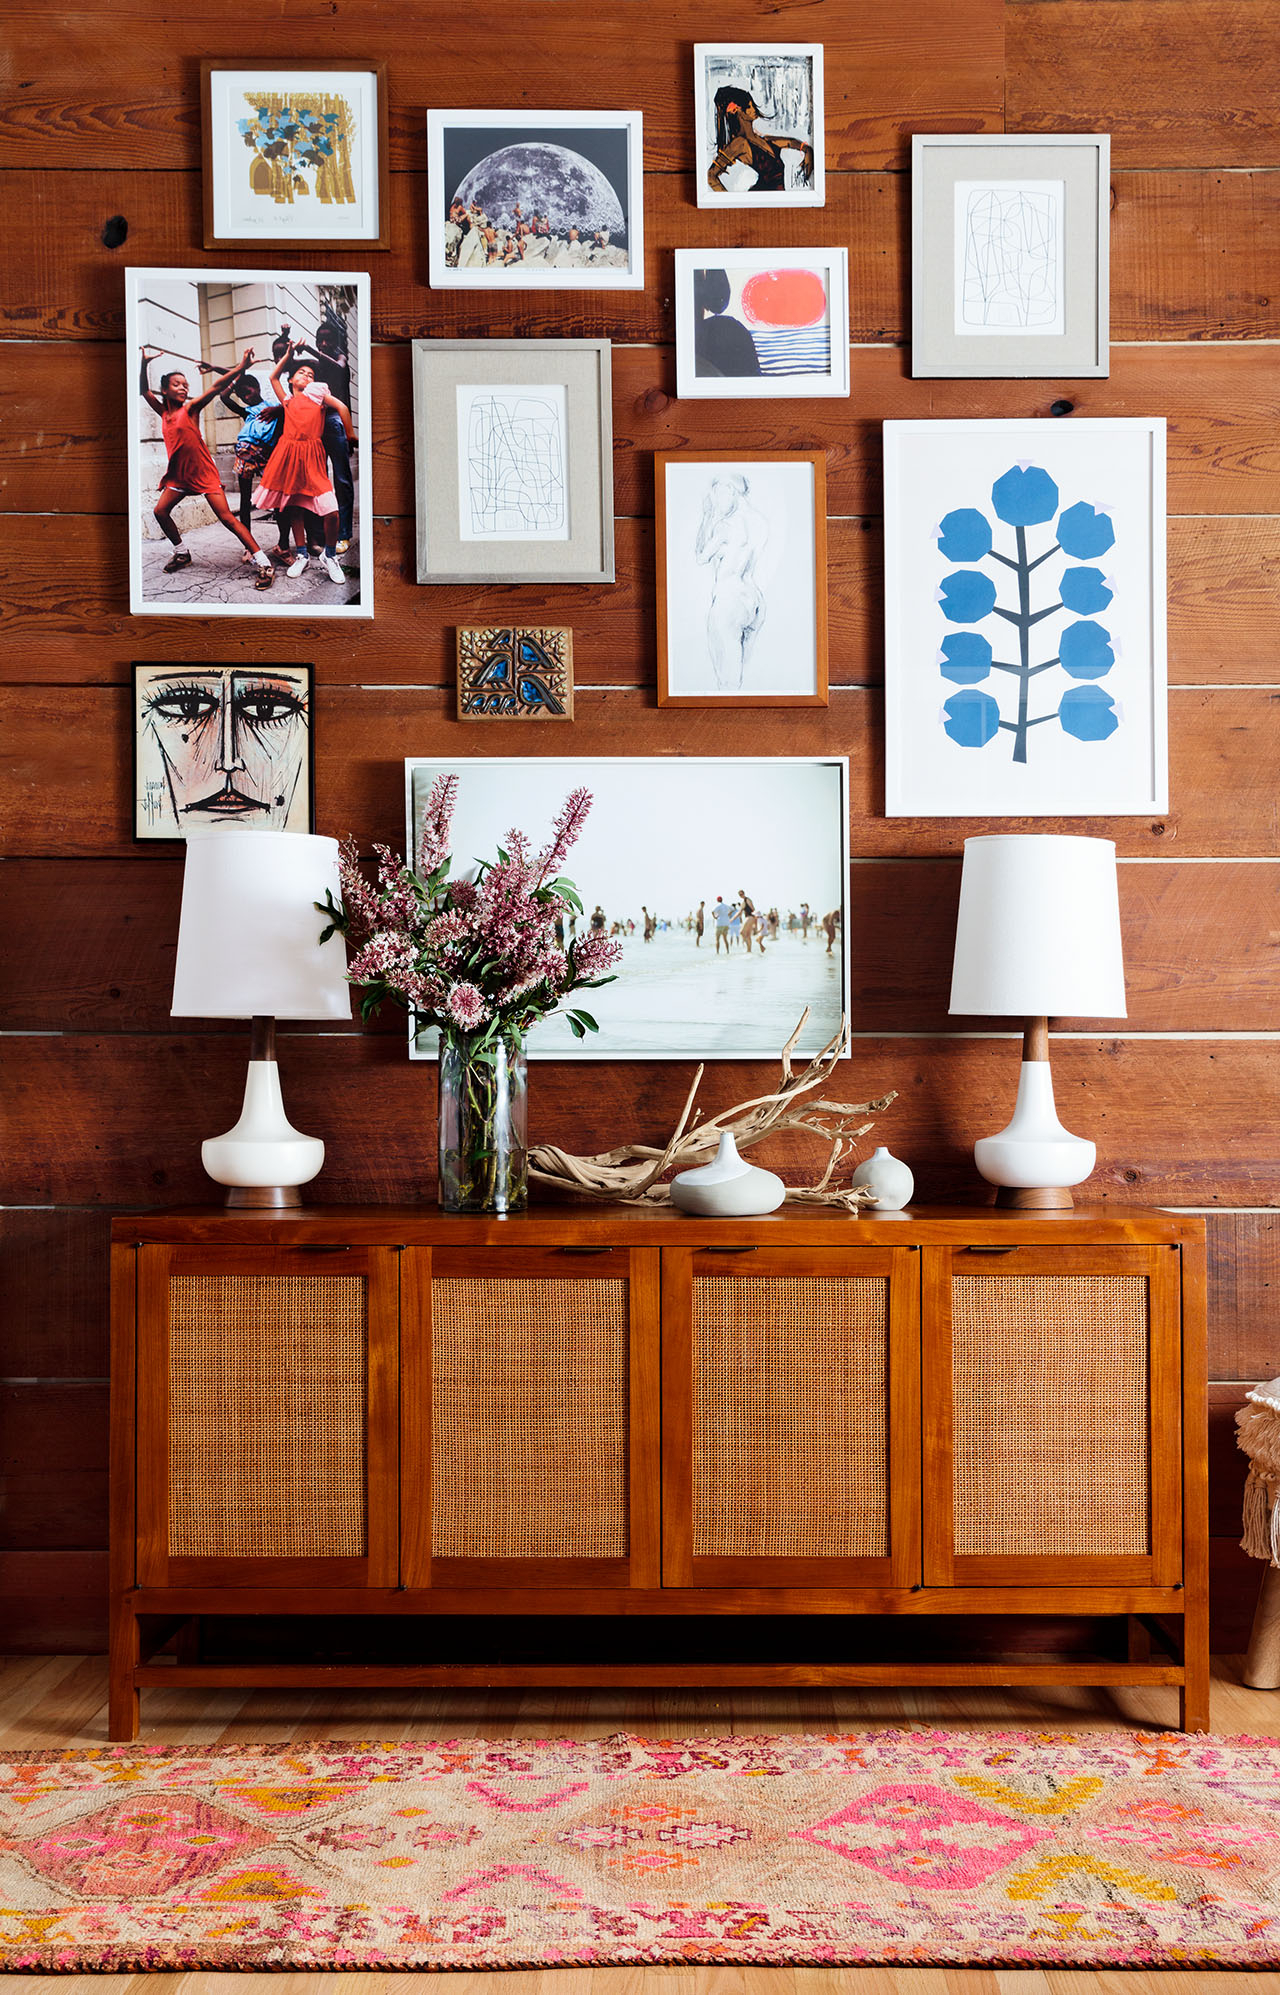 2020 Creative Wall Art Ideas For Every Blank Spot In Your Home With Regard To Blended Fabric Hello Beauty Full Wall Hangings (View 15 of 20)